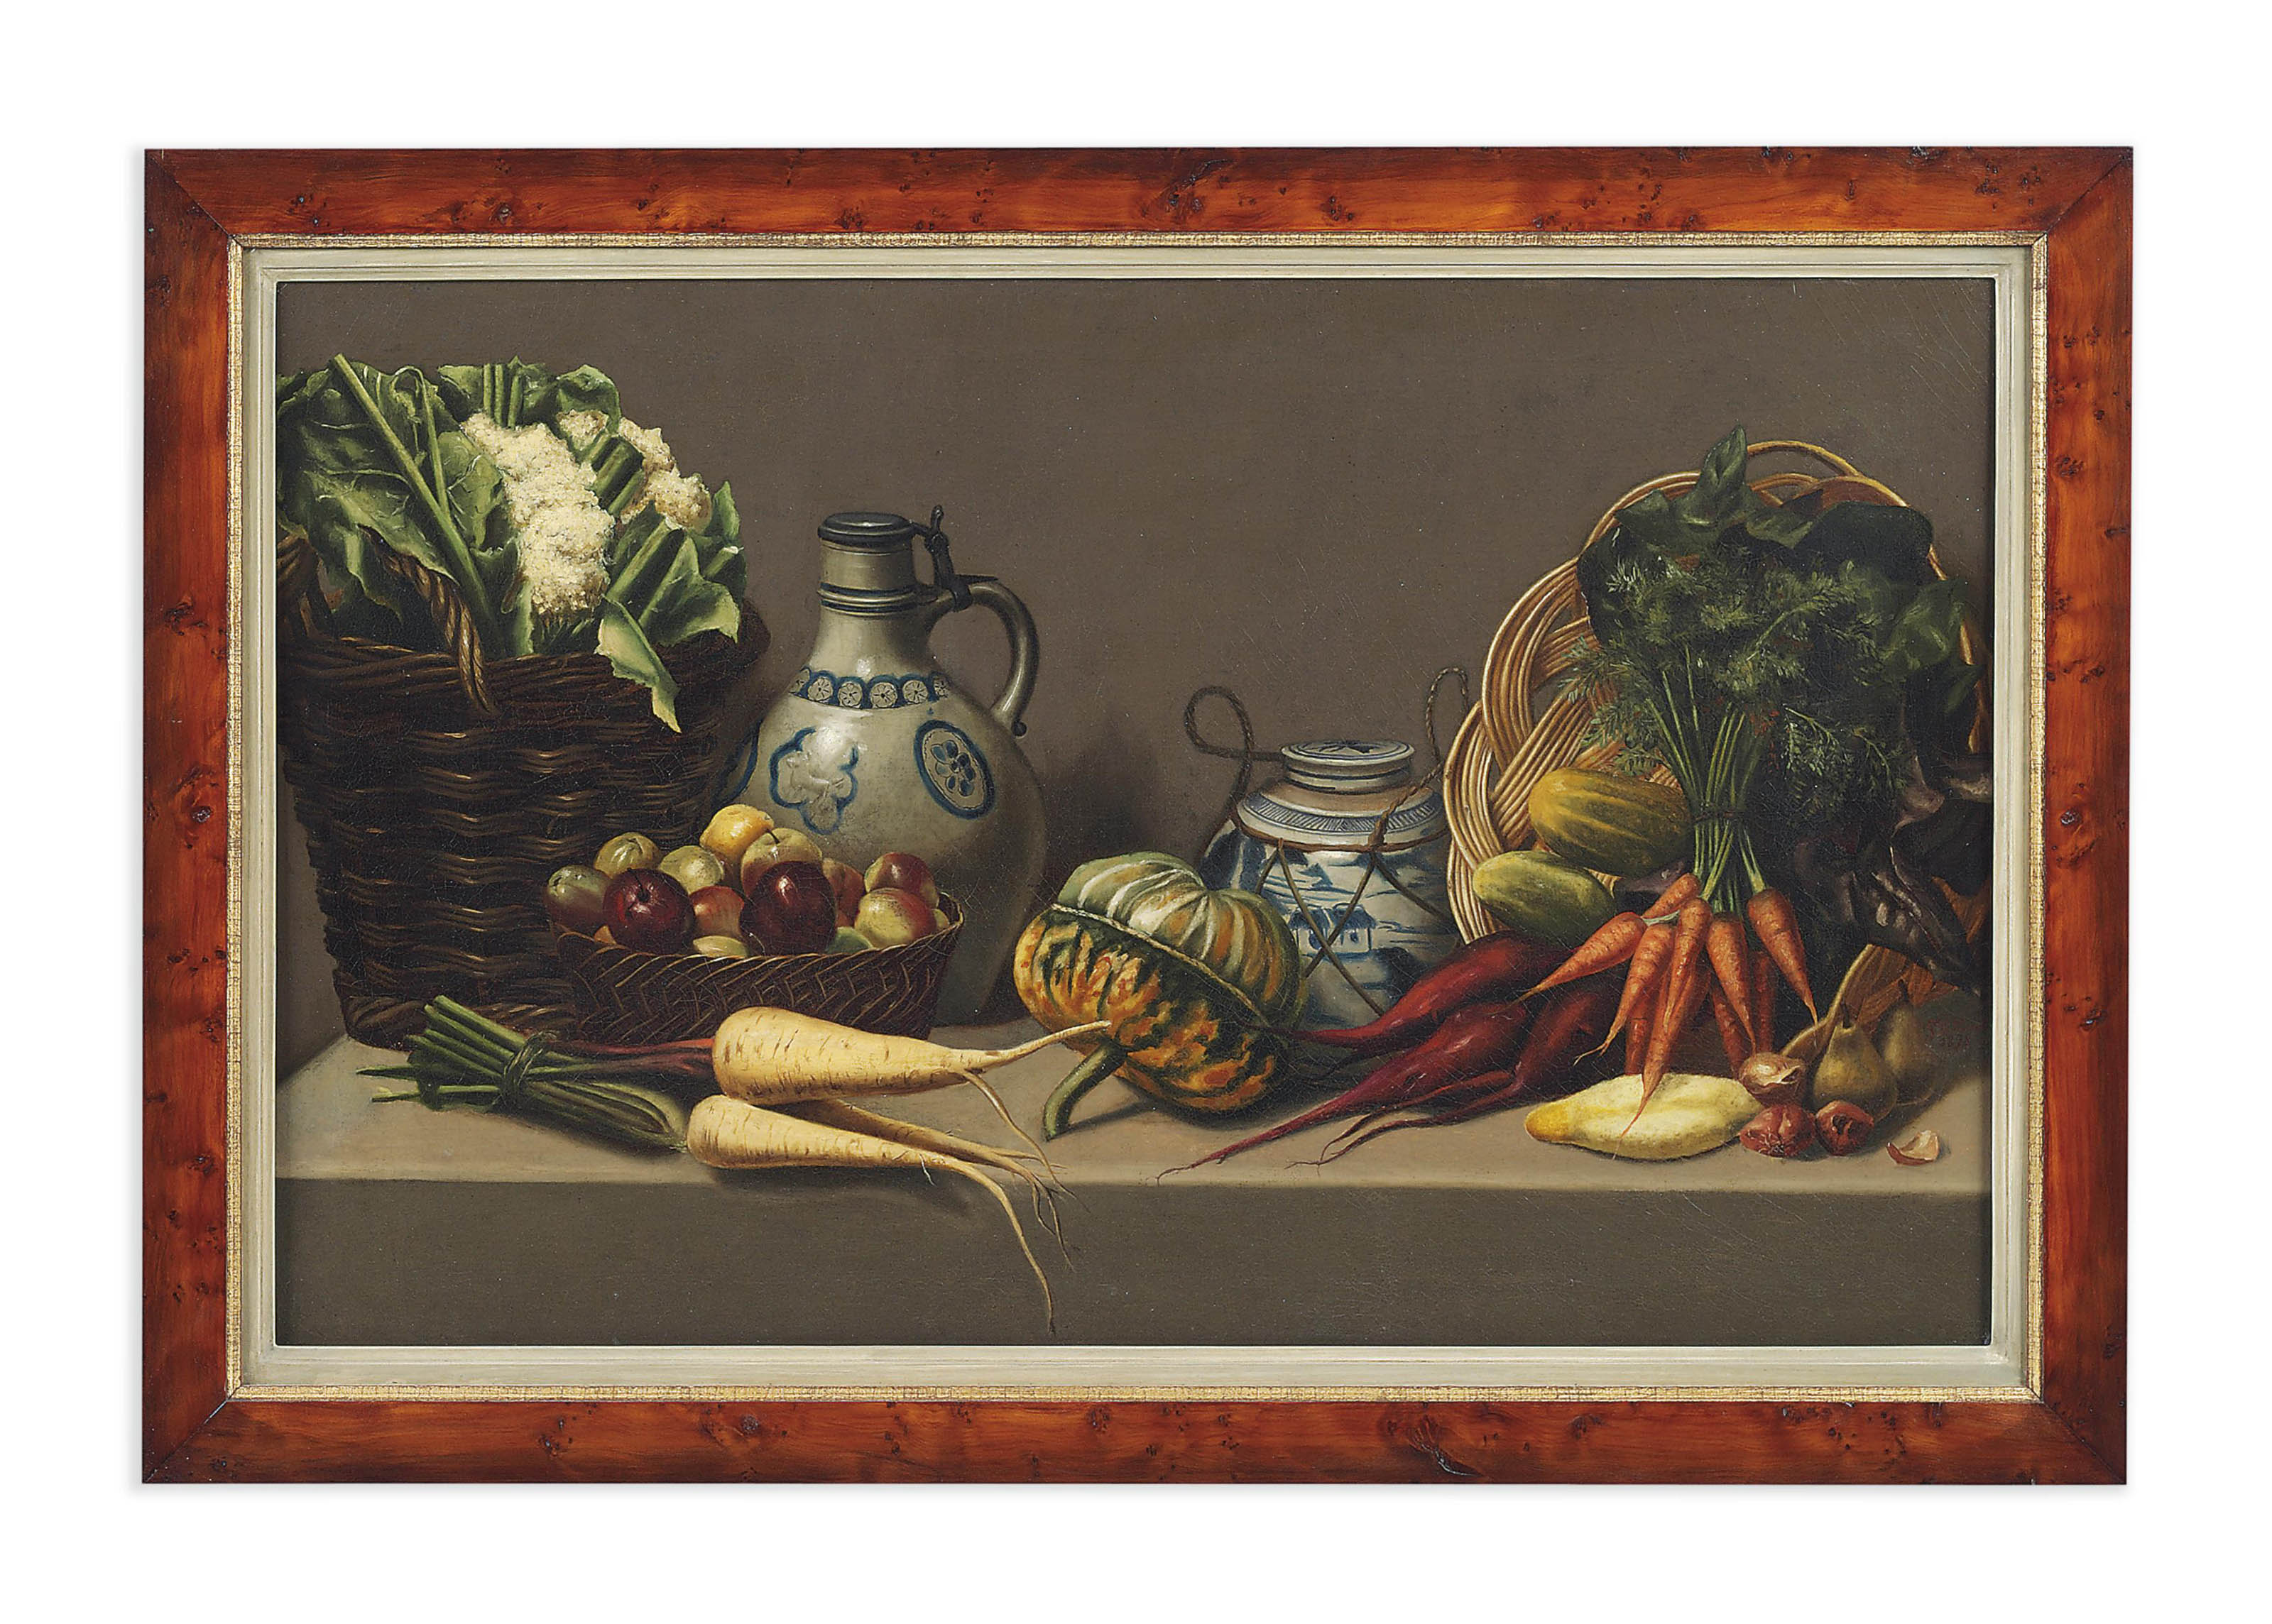 Vegetables and baskets on a ledge